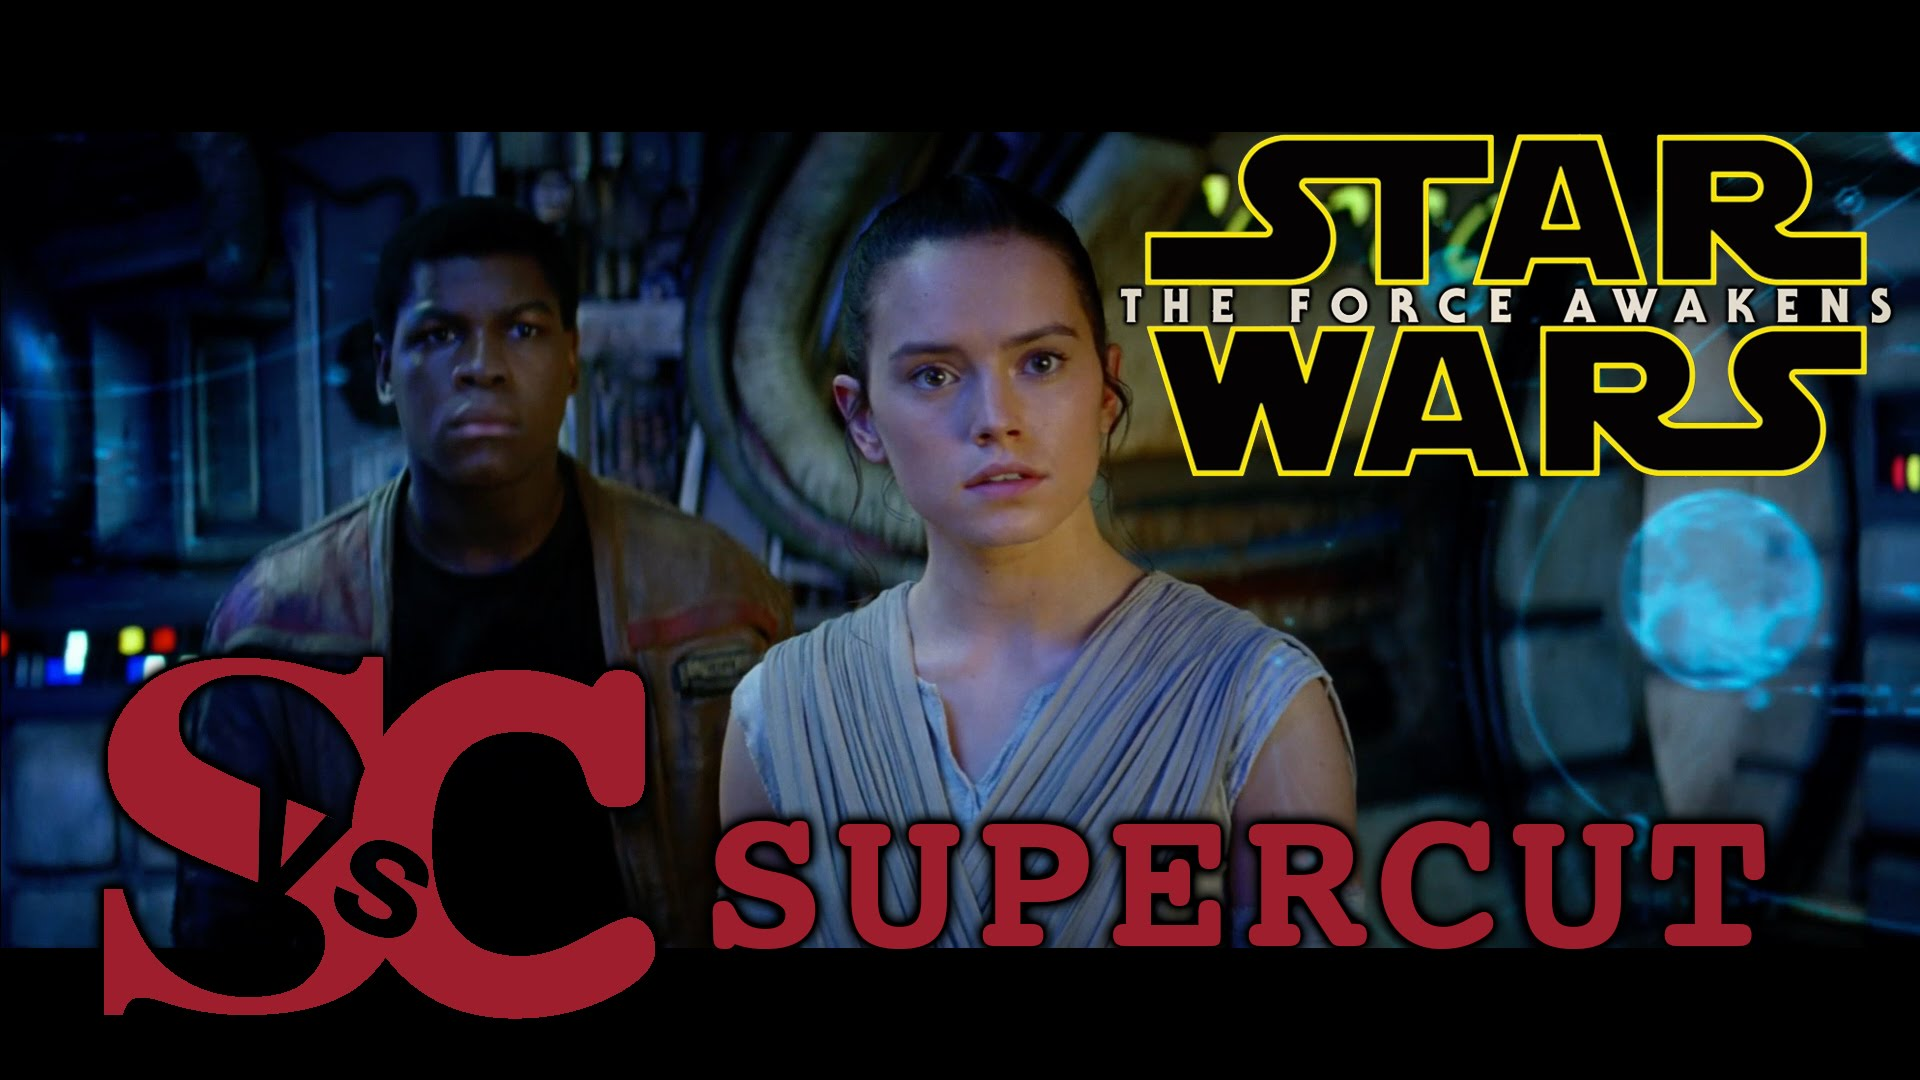 STAR WARS – THE FORCE AWAKENS Trailer Supercut